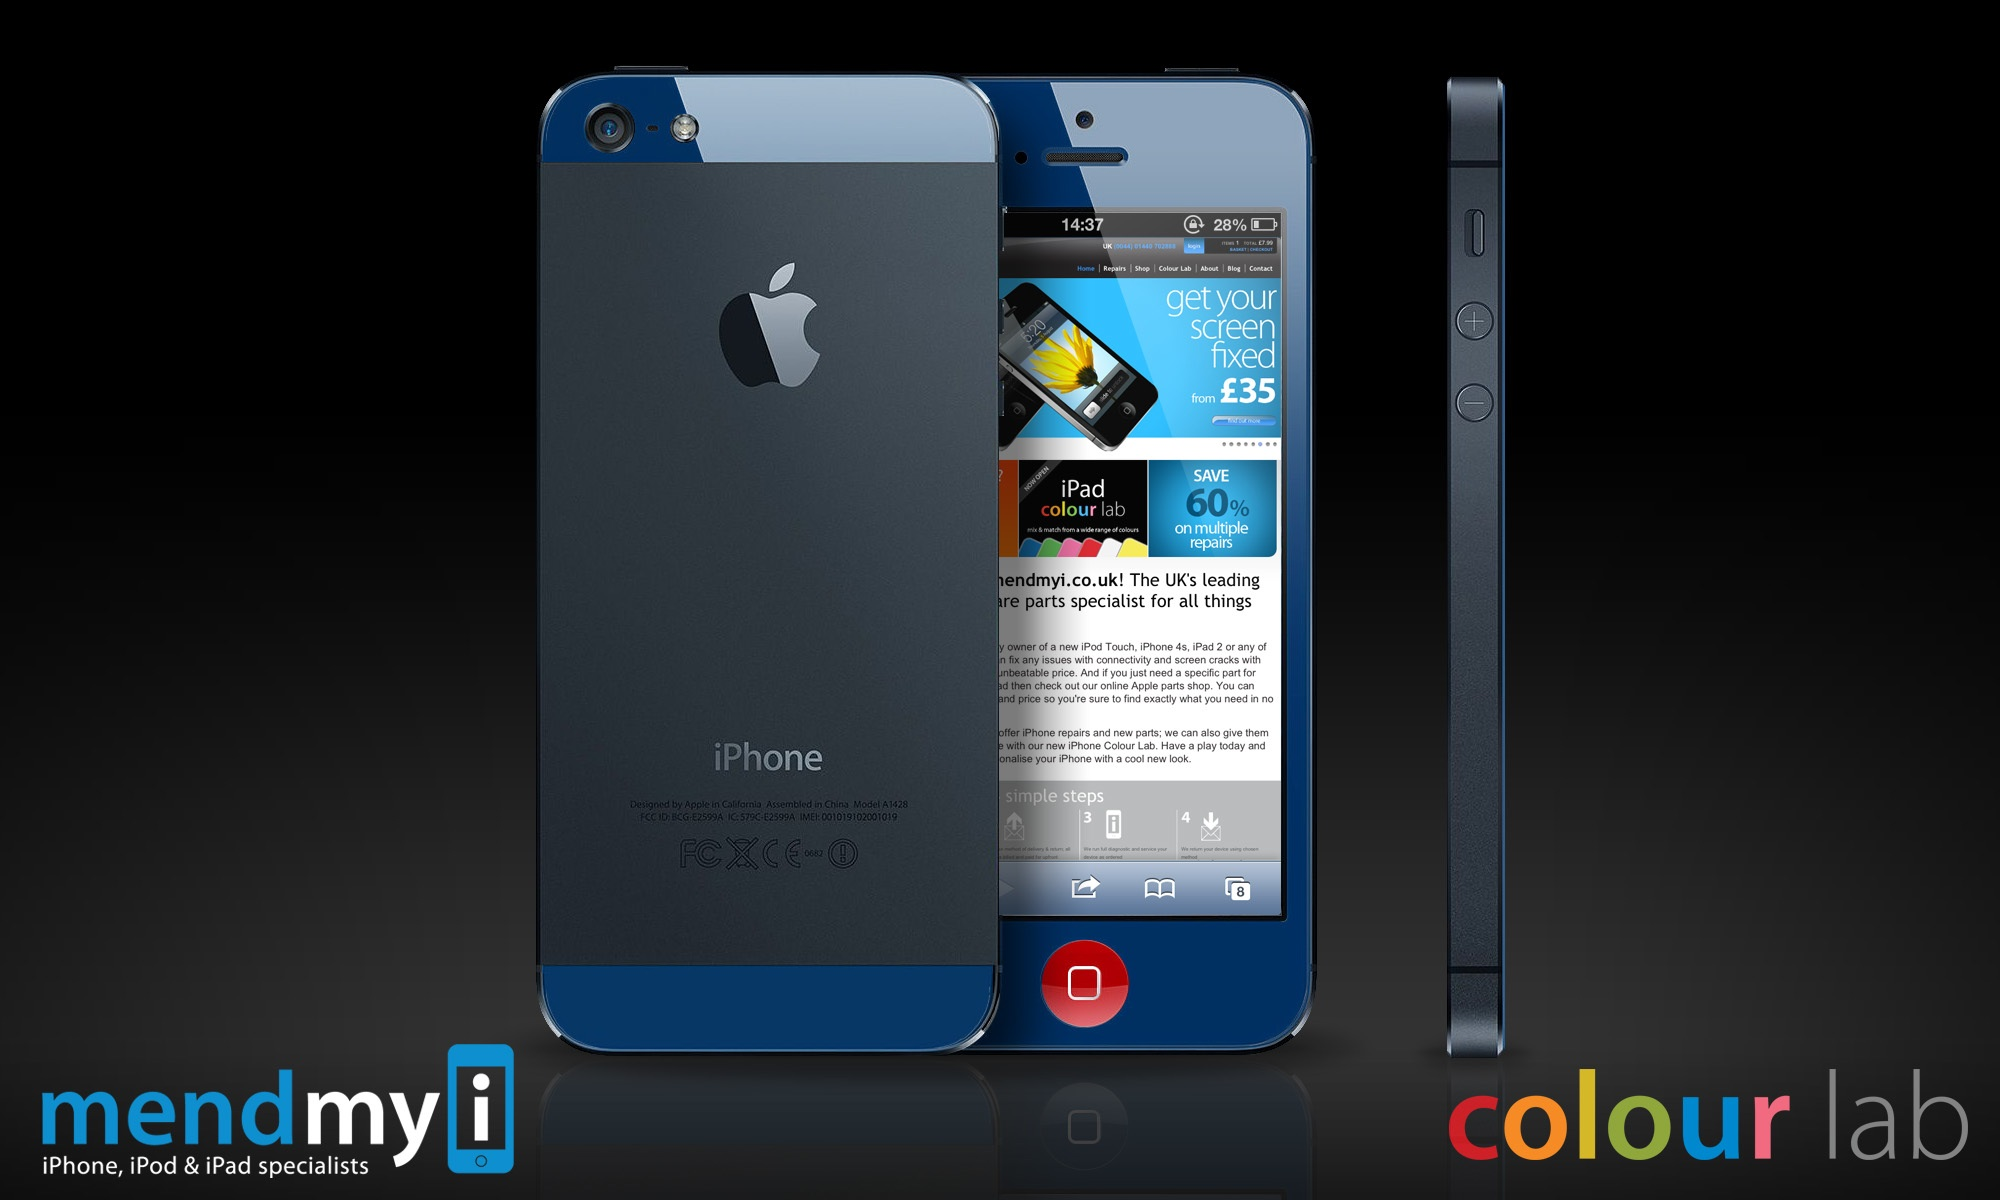 Mendmyi What The IPhone 5 Should Look Like Colour Lab